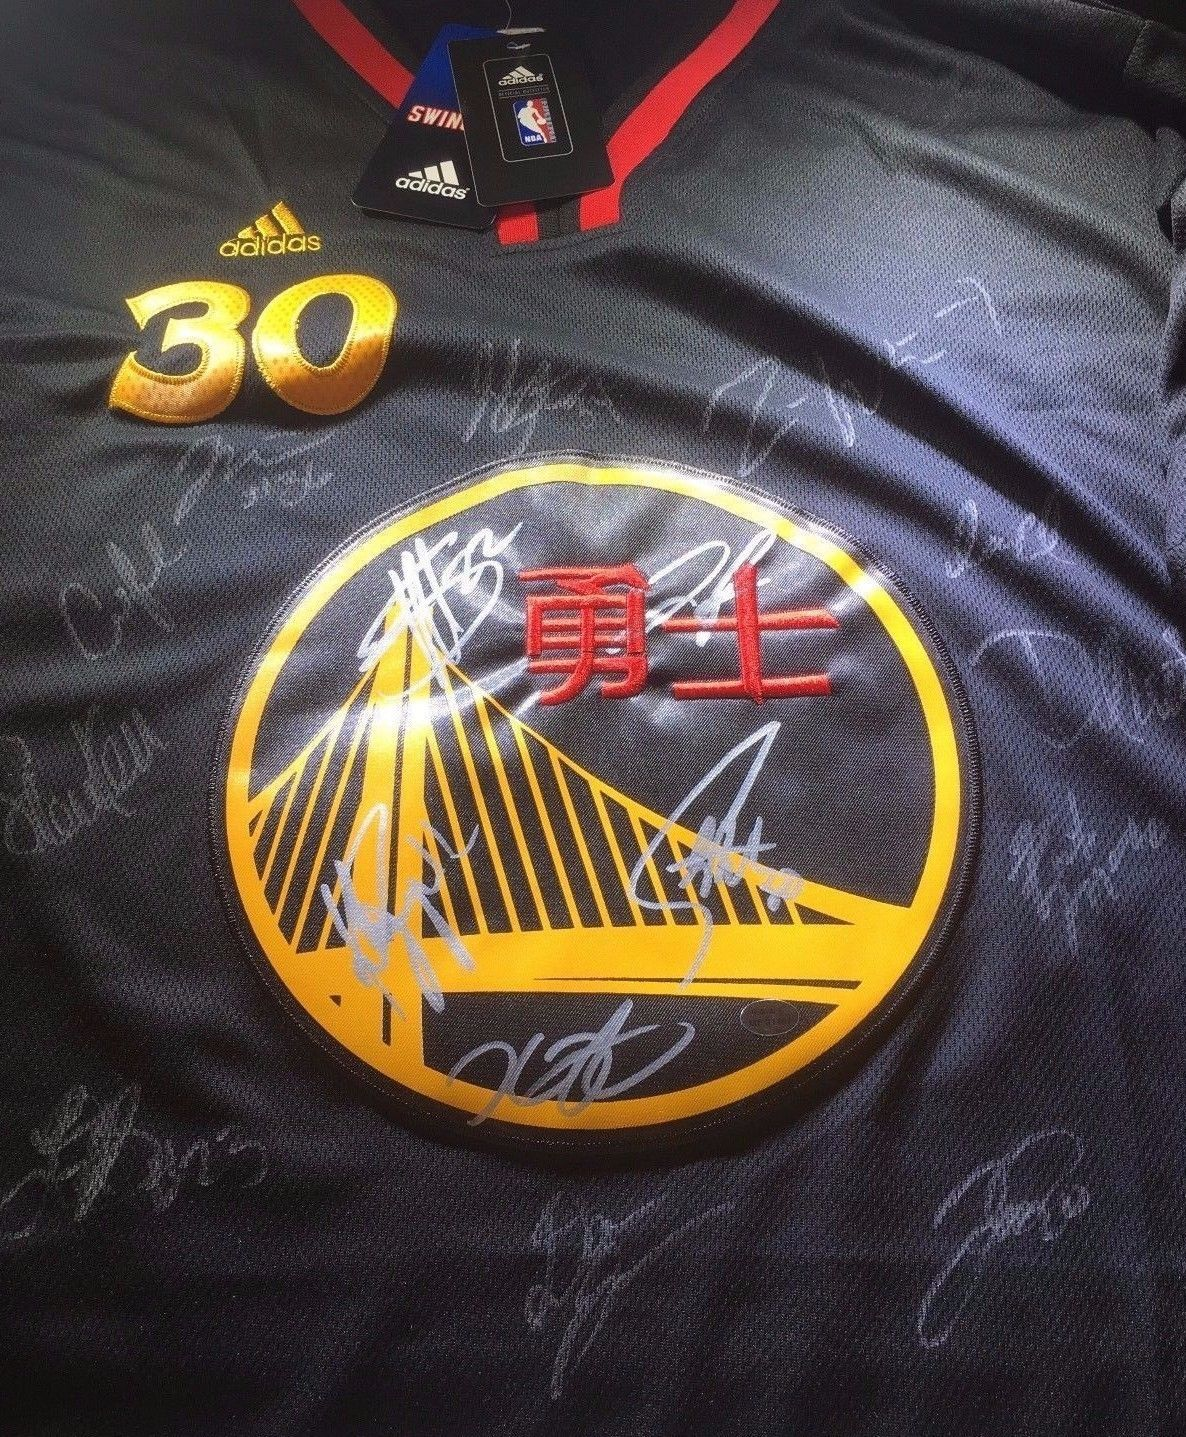 new arrivals c3415 b3c6d GOLDEN STATE WARRIORS - 2017 TEAM SIGNED CHINESE NEW YEAR NBA JERSEY - FULL  LOA